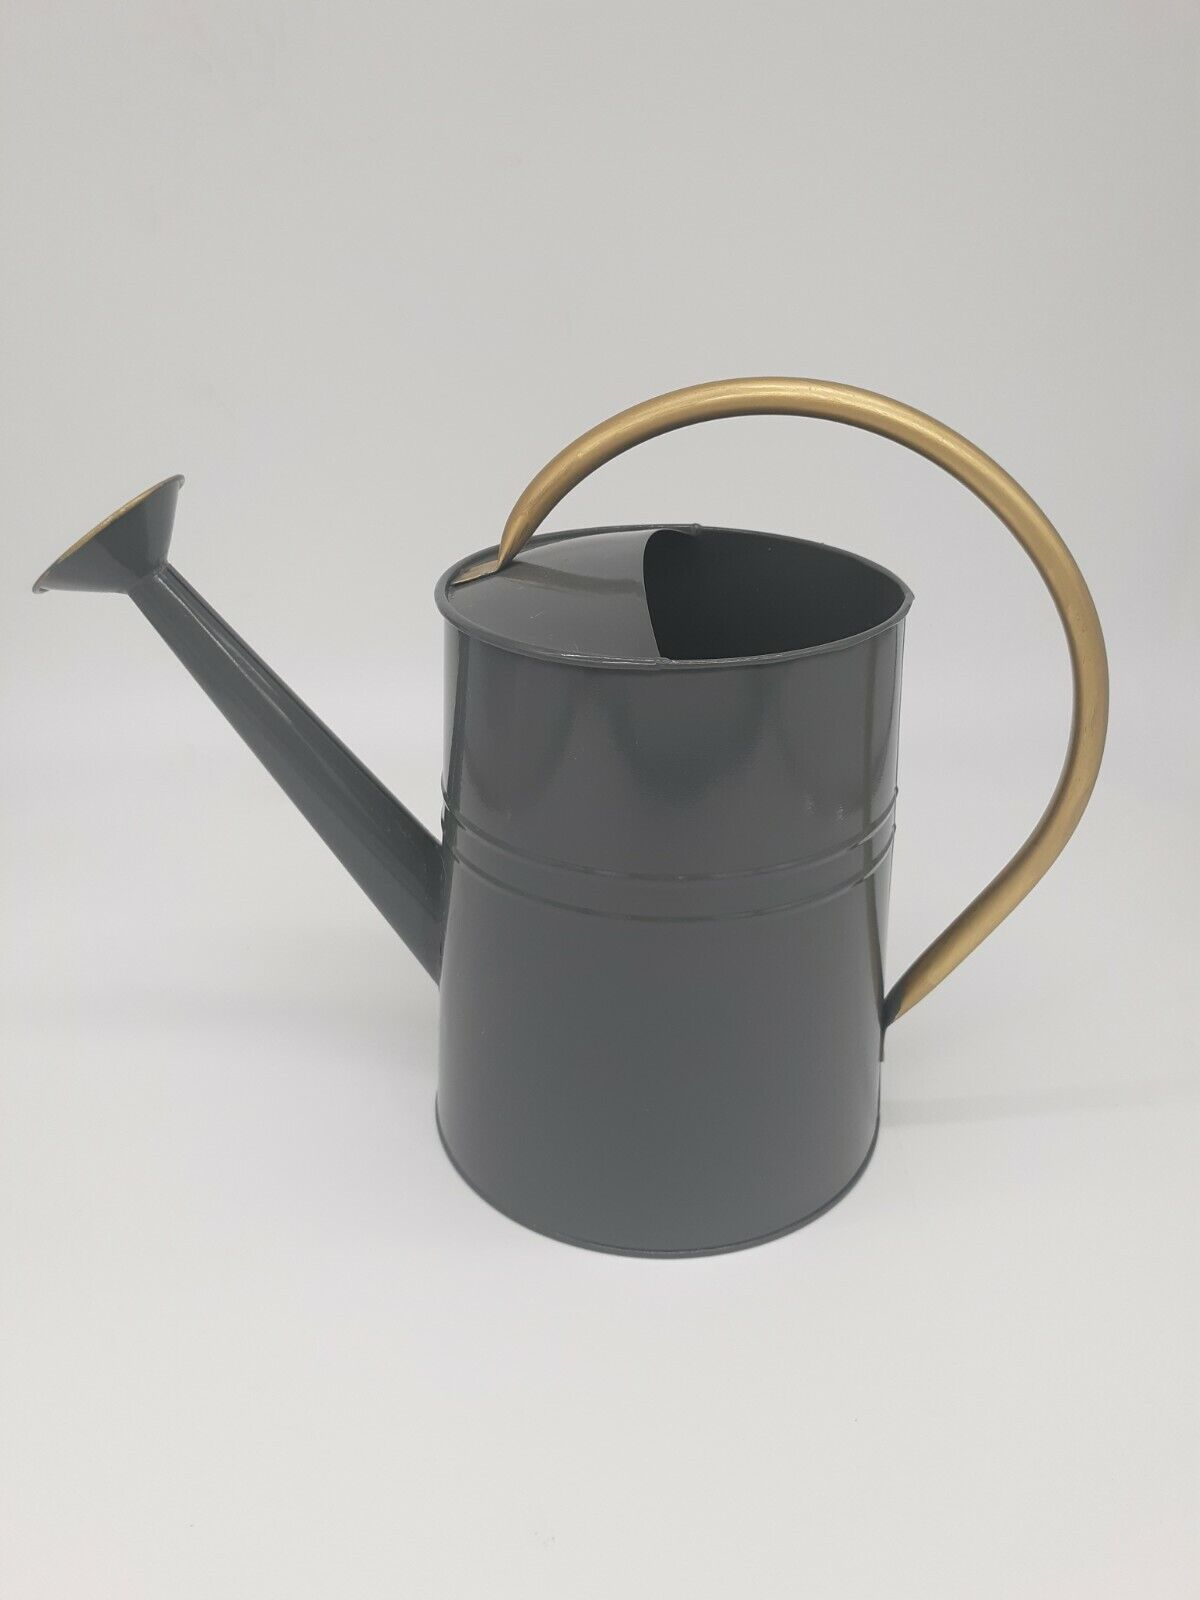 Gray Metal Adult Watering Can 1 Gallon With Gold Handle and